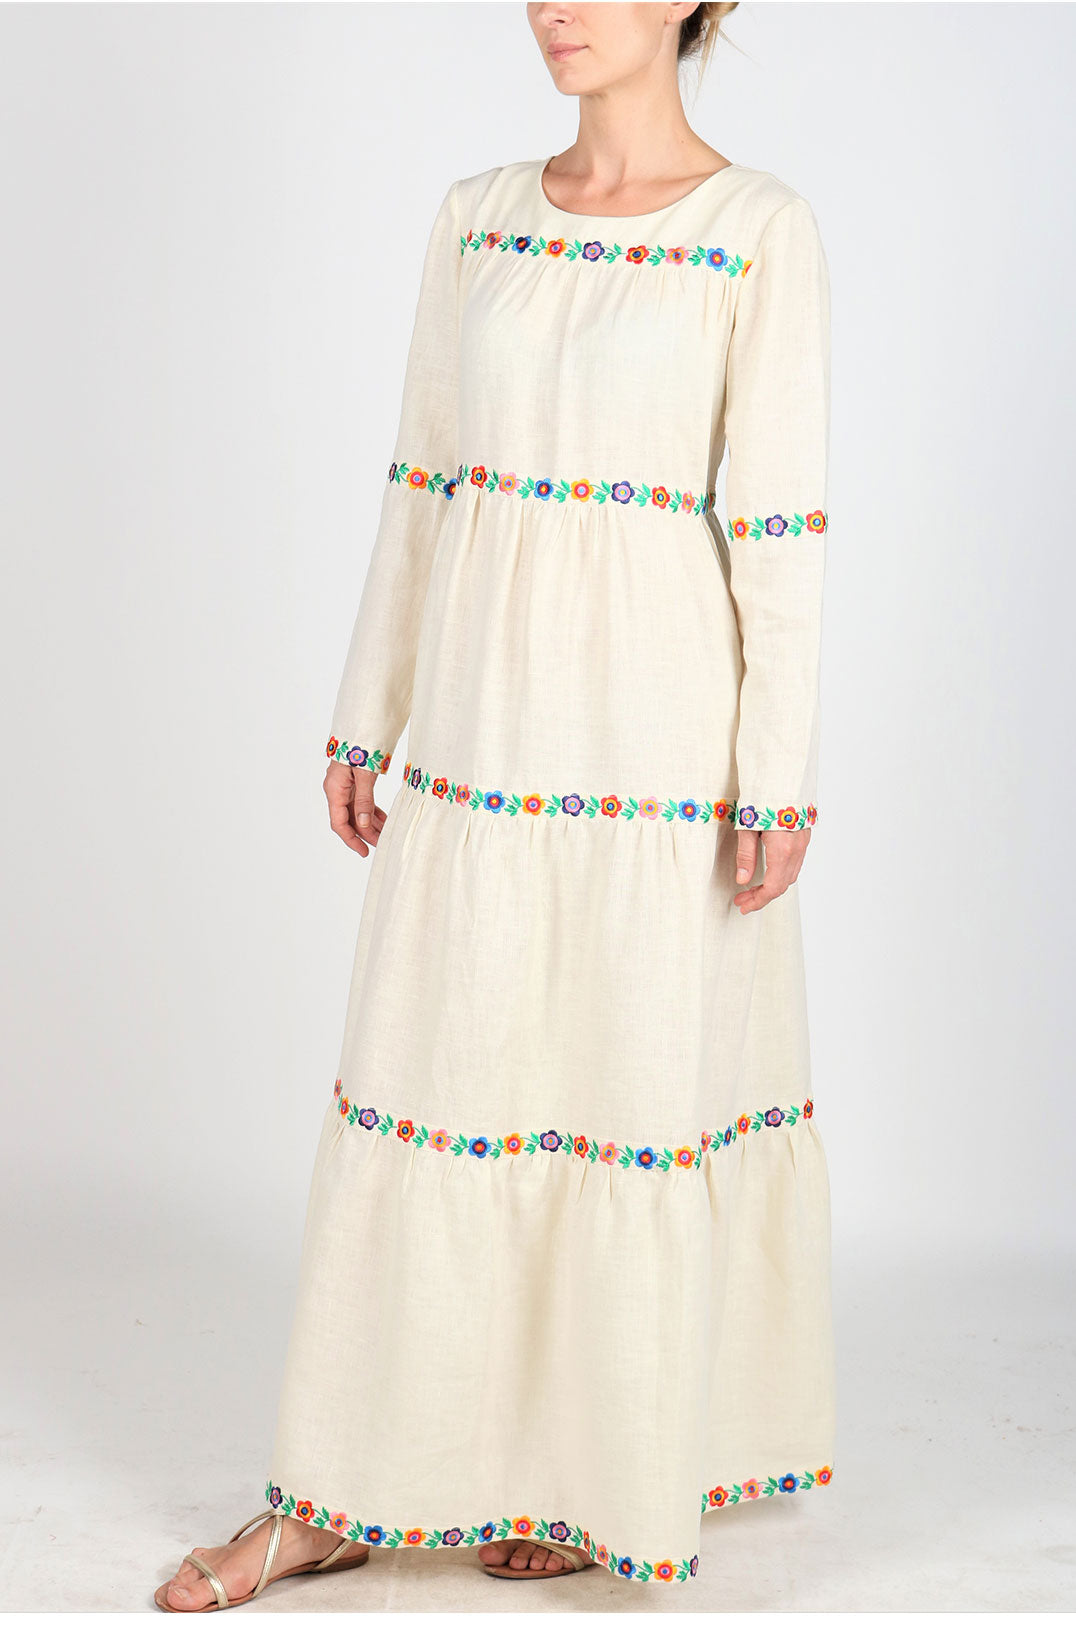 ec38eb5f944 Fanm Mon Cream Vyshyvanka Embroidered MAXI Linen Floral Embroidered Dress  MAYA-CRM